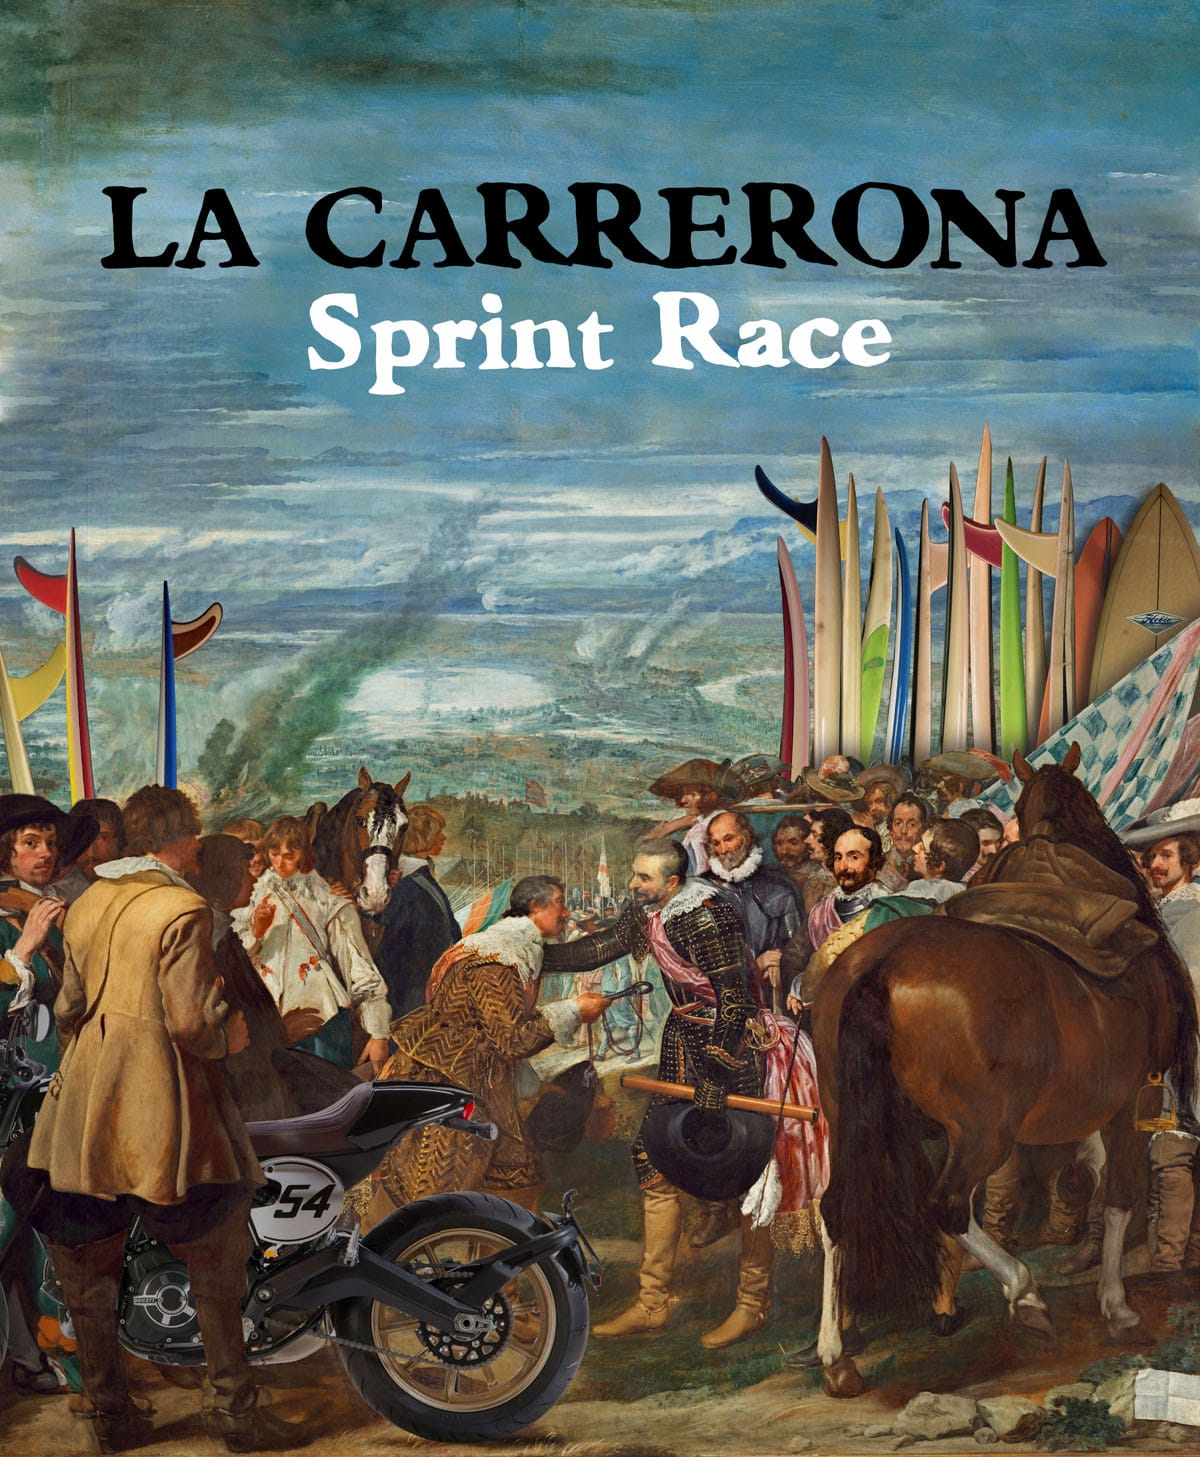 La Carrerona - Sprint Race